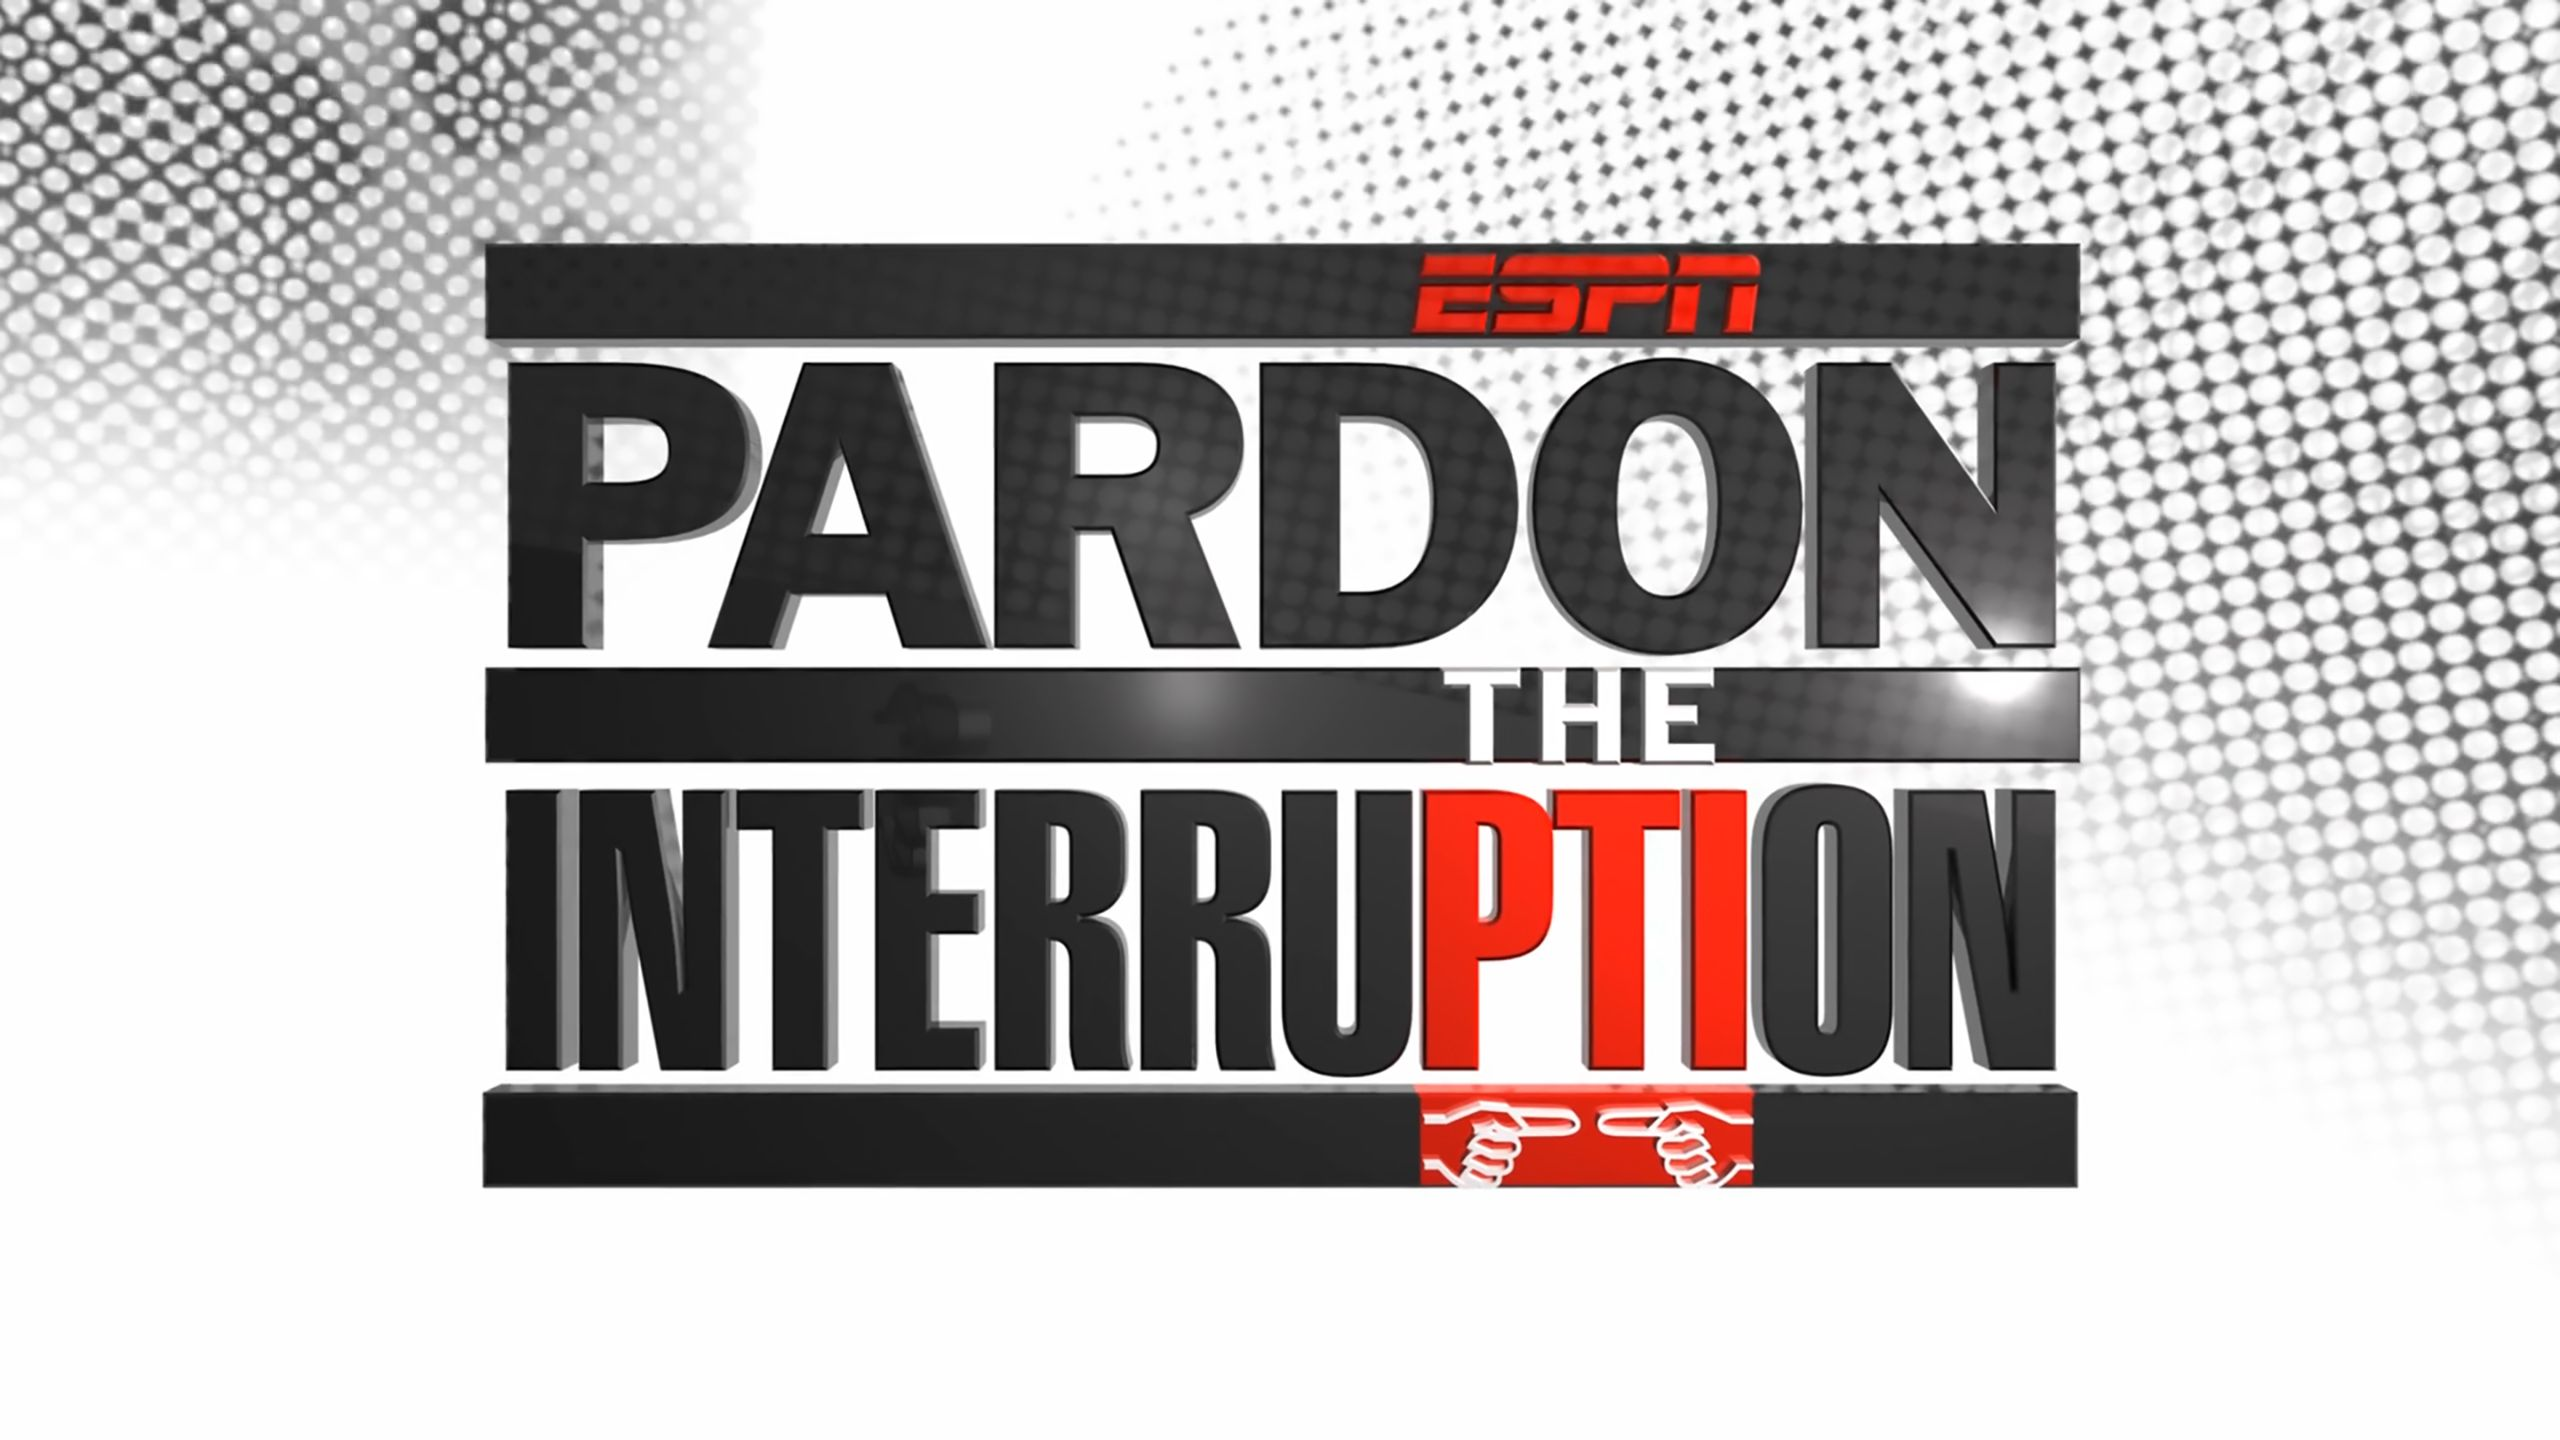 Mon, 5/21 - Pardon The Interruption